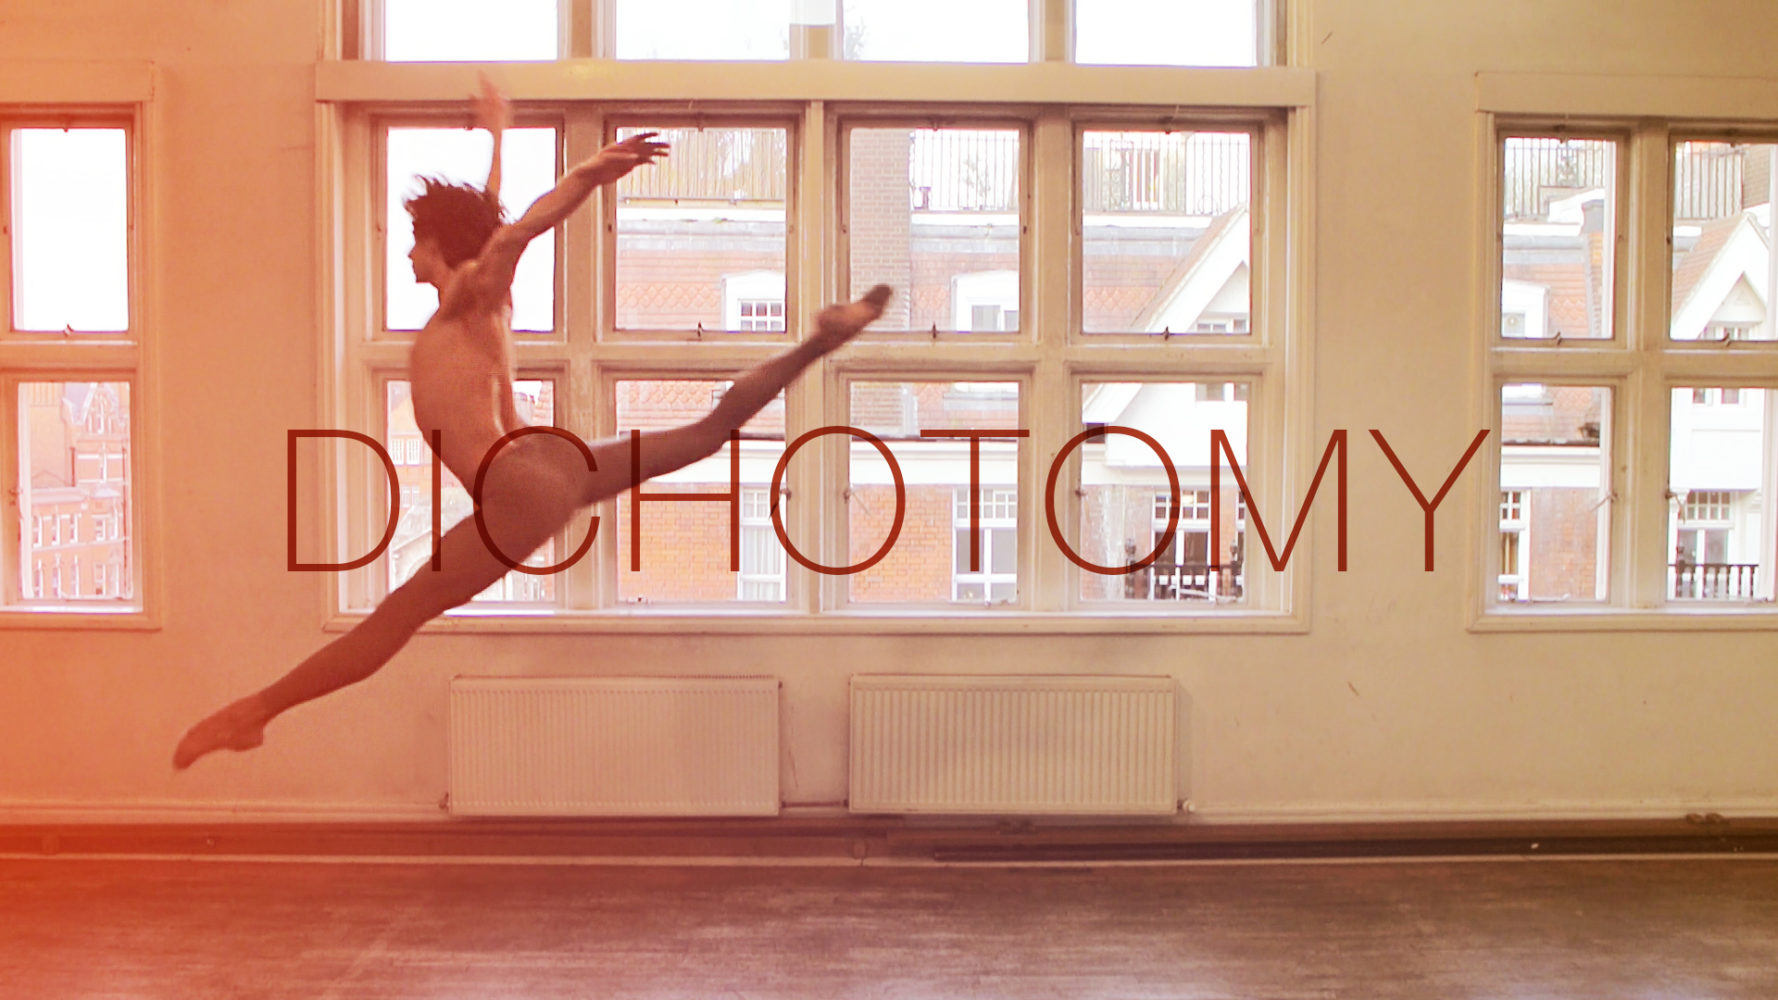 Dichotomy : A dance film